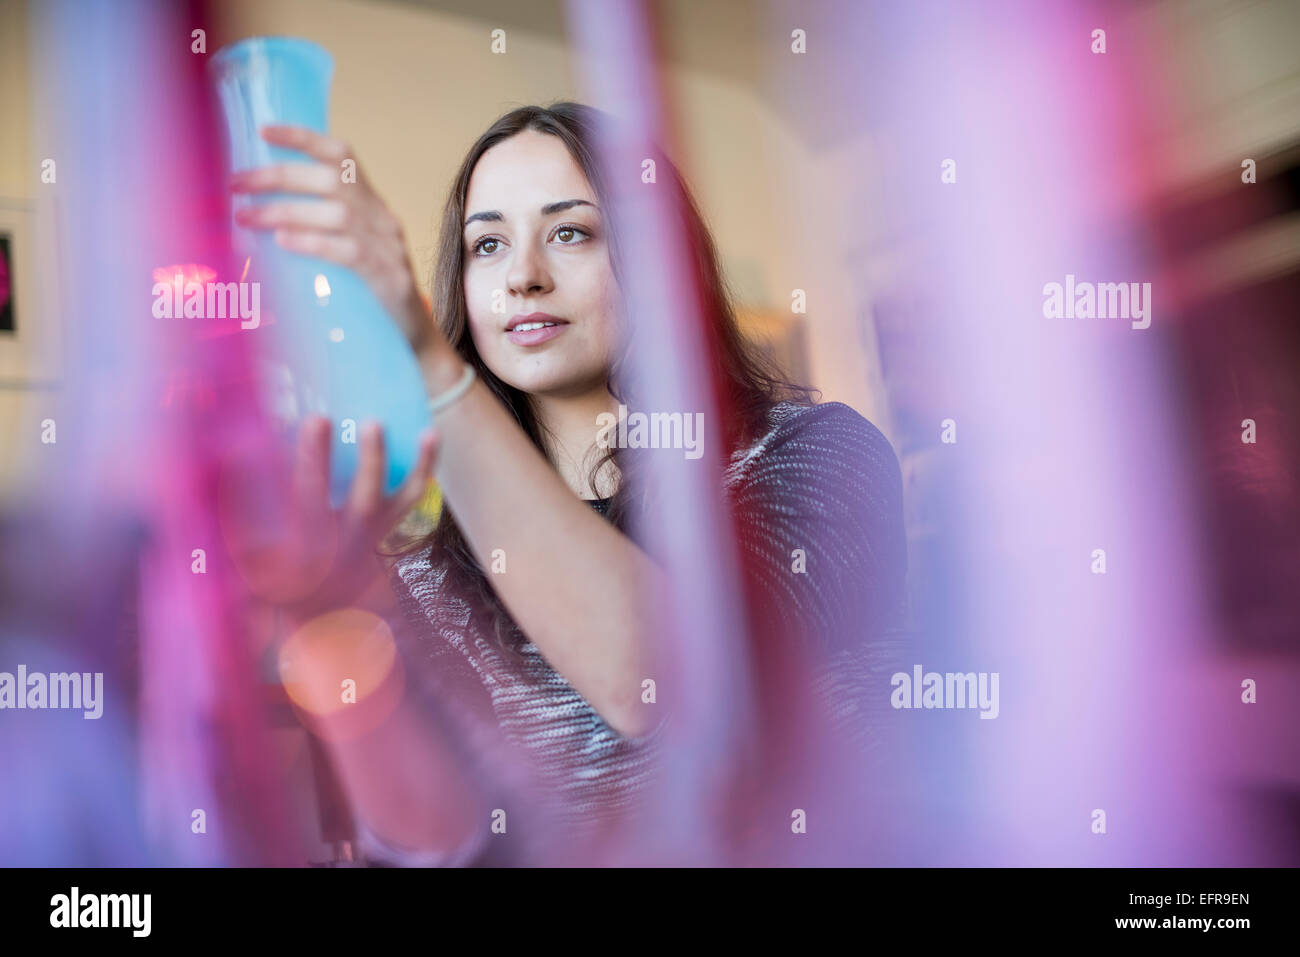 Woman holding a blue glass vase. Red and pink vases in the foreground. - Stock Image